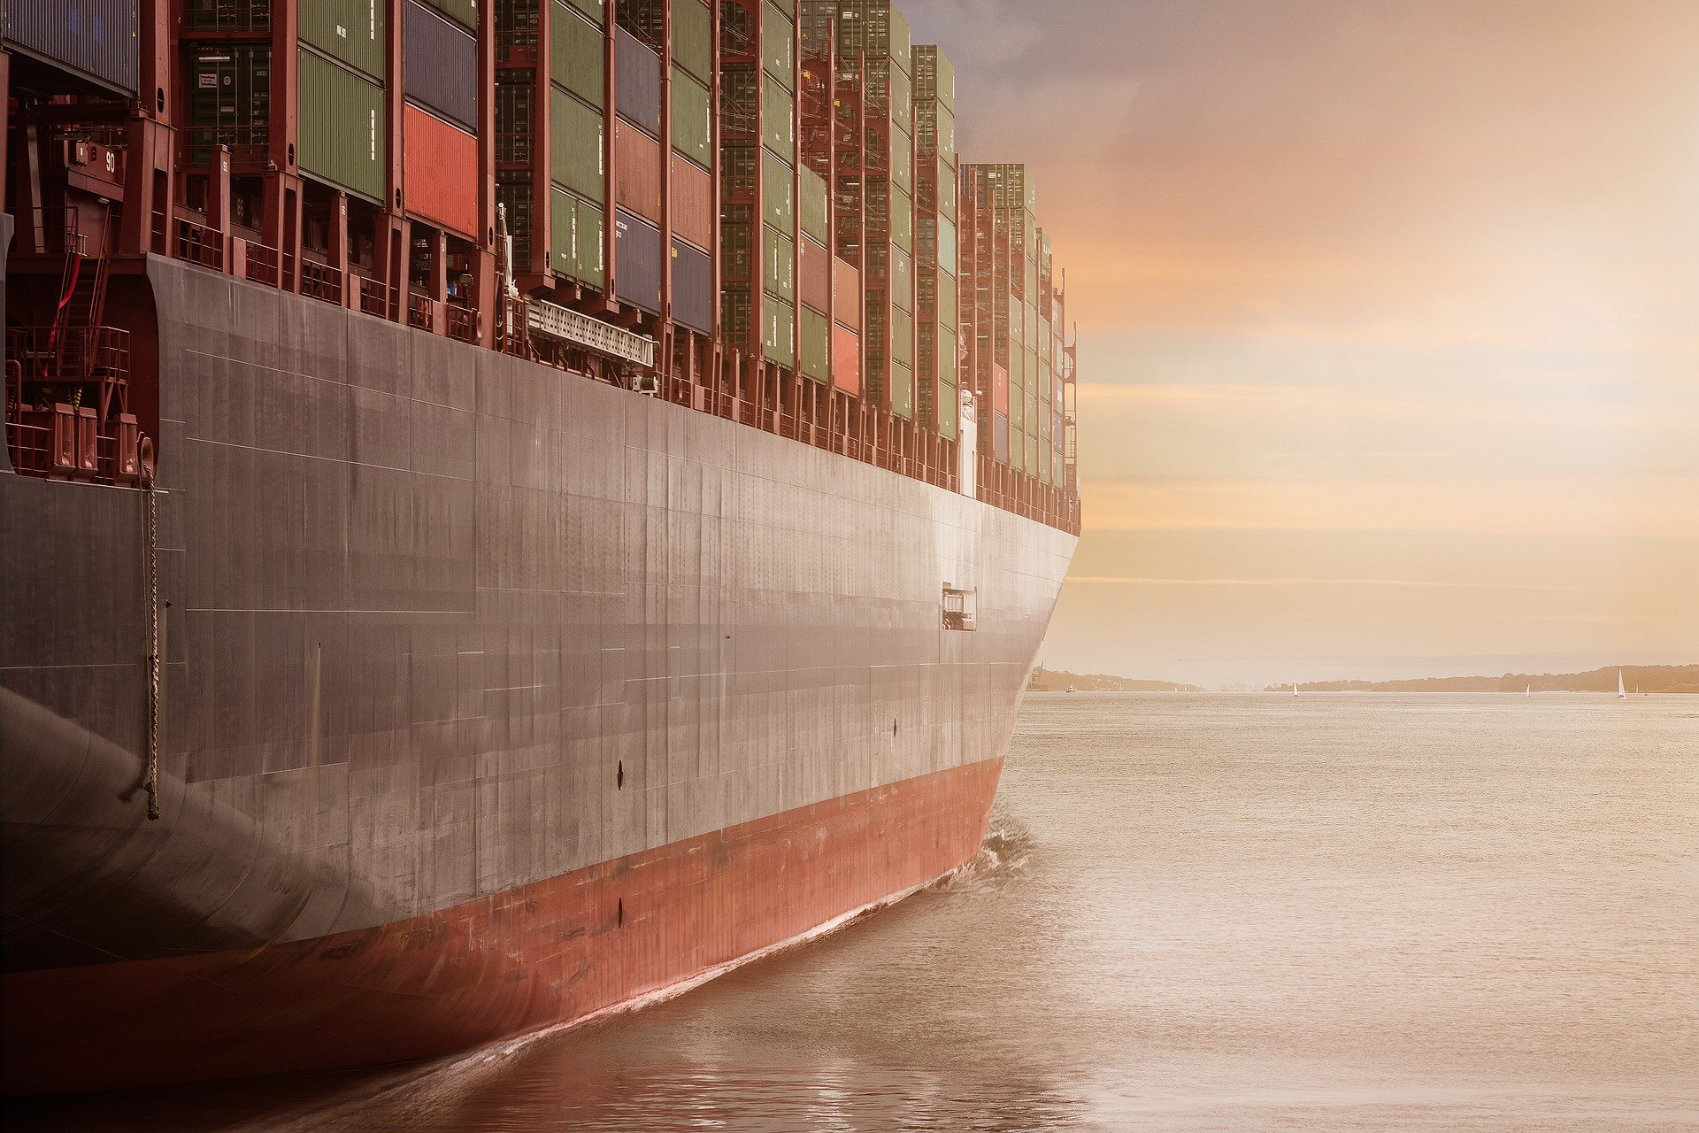 Container Ship - Image by Alexander Kliem